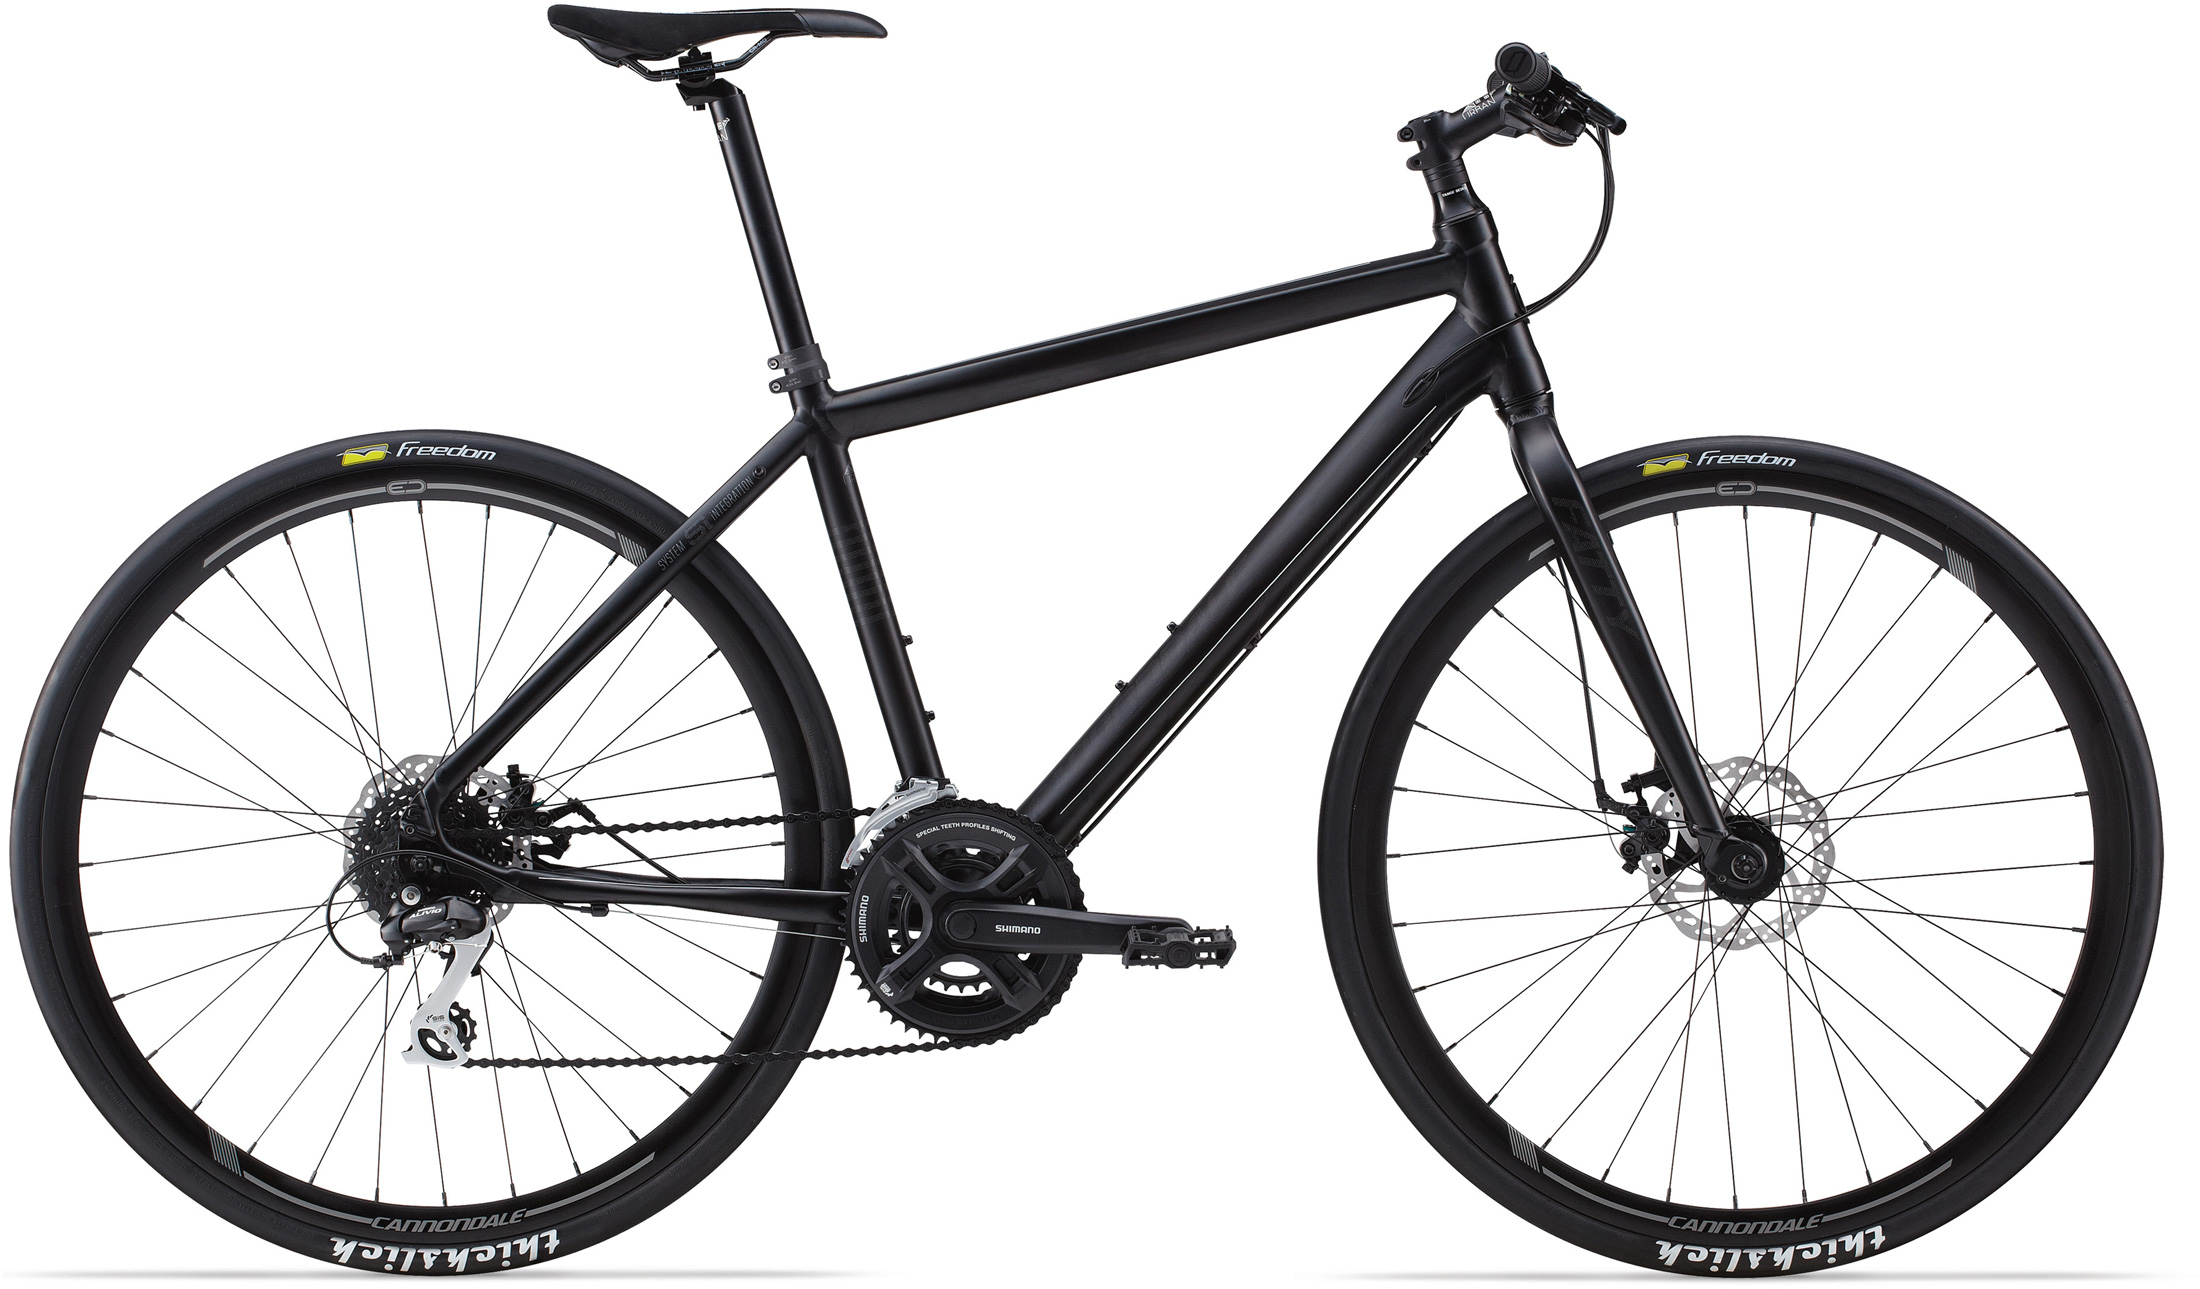 7868809ce86 Cannondale Bad Boy 9 - Toga! New York's Oldest and Largest Bike Shop